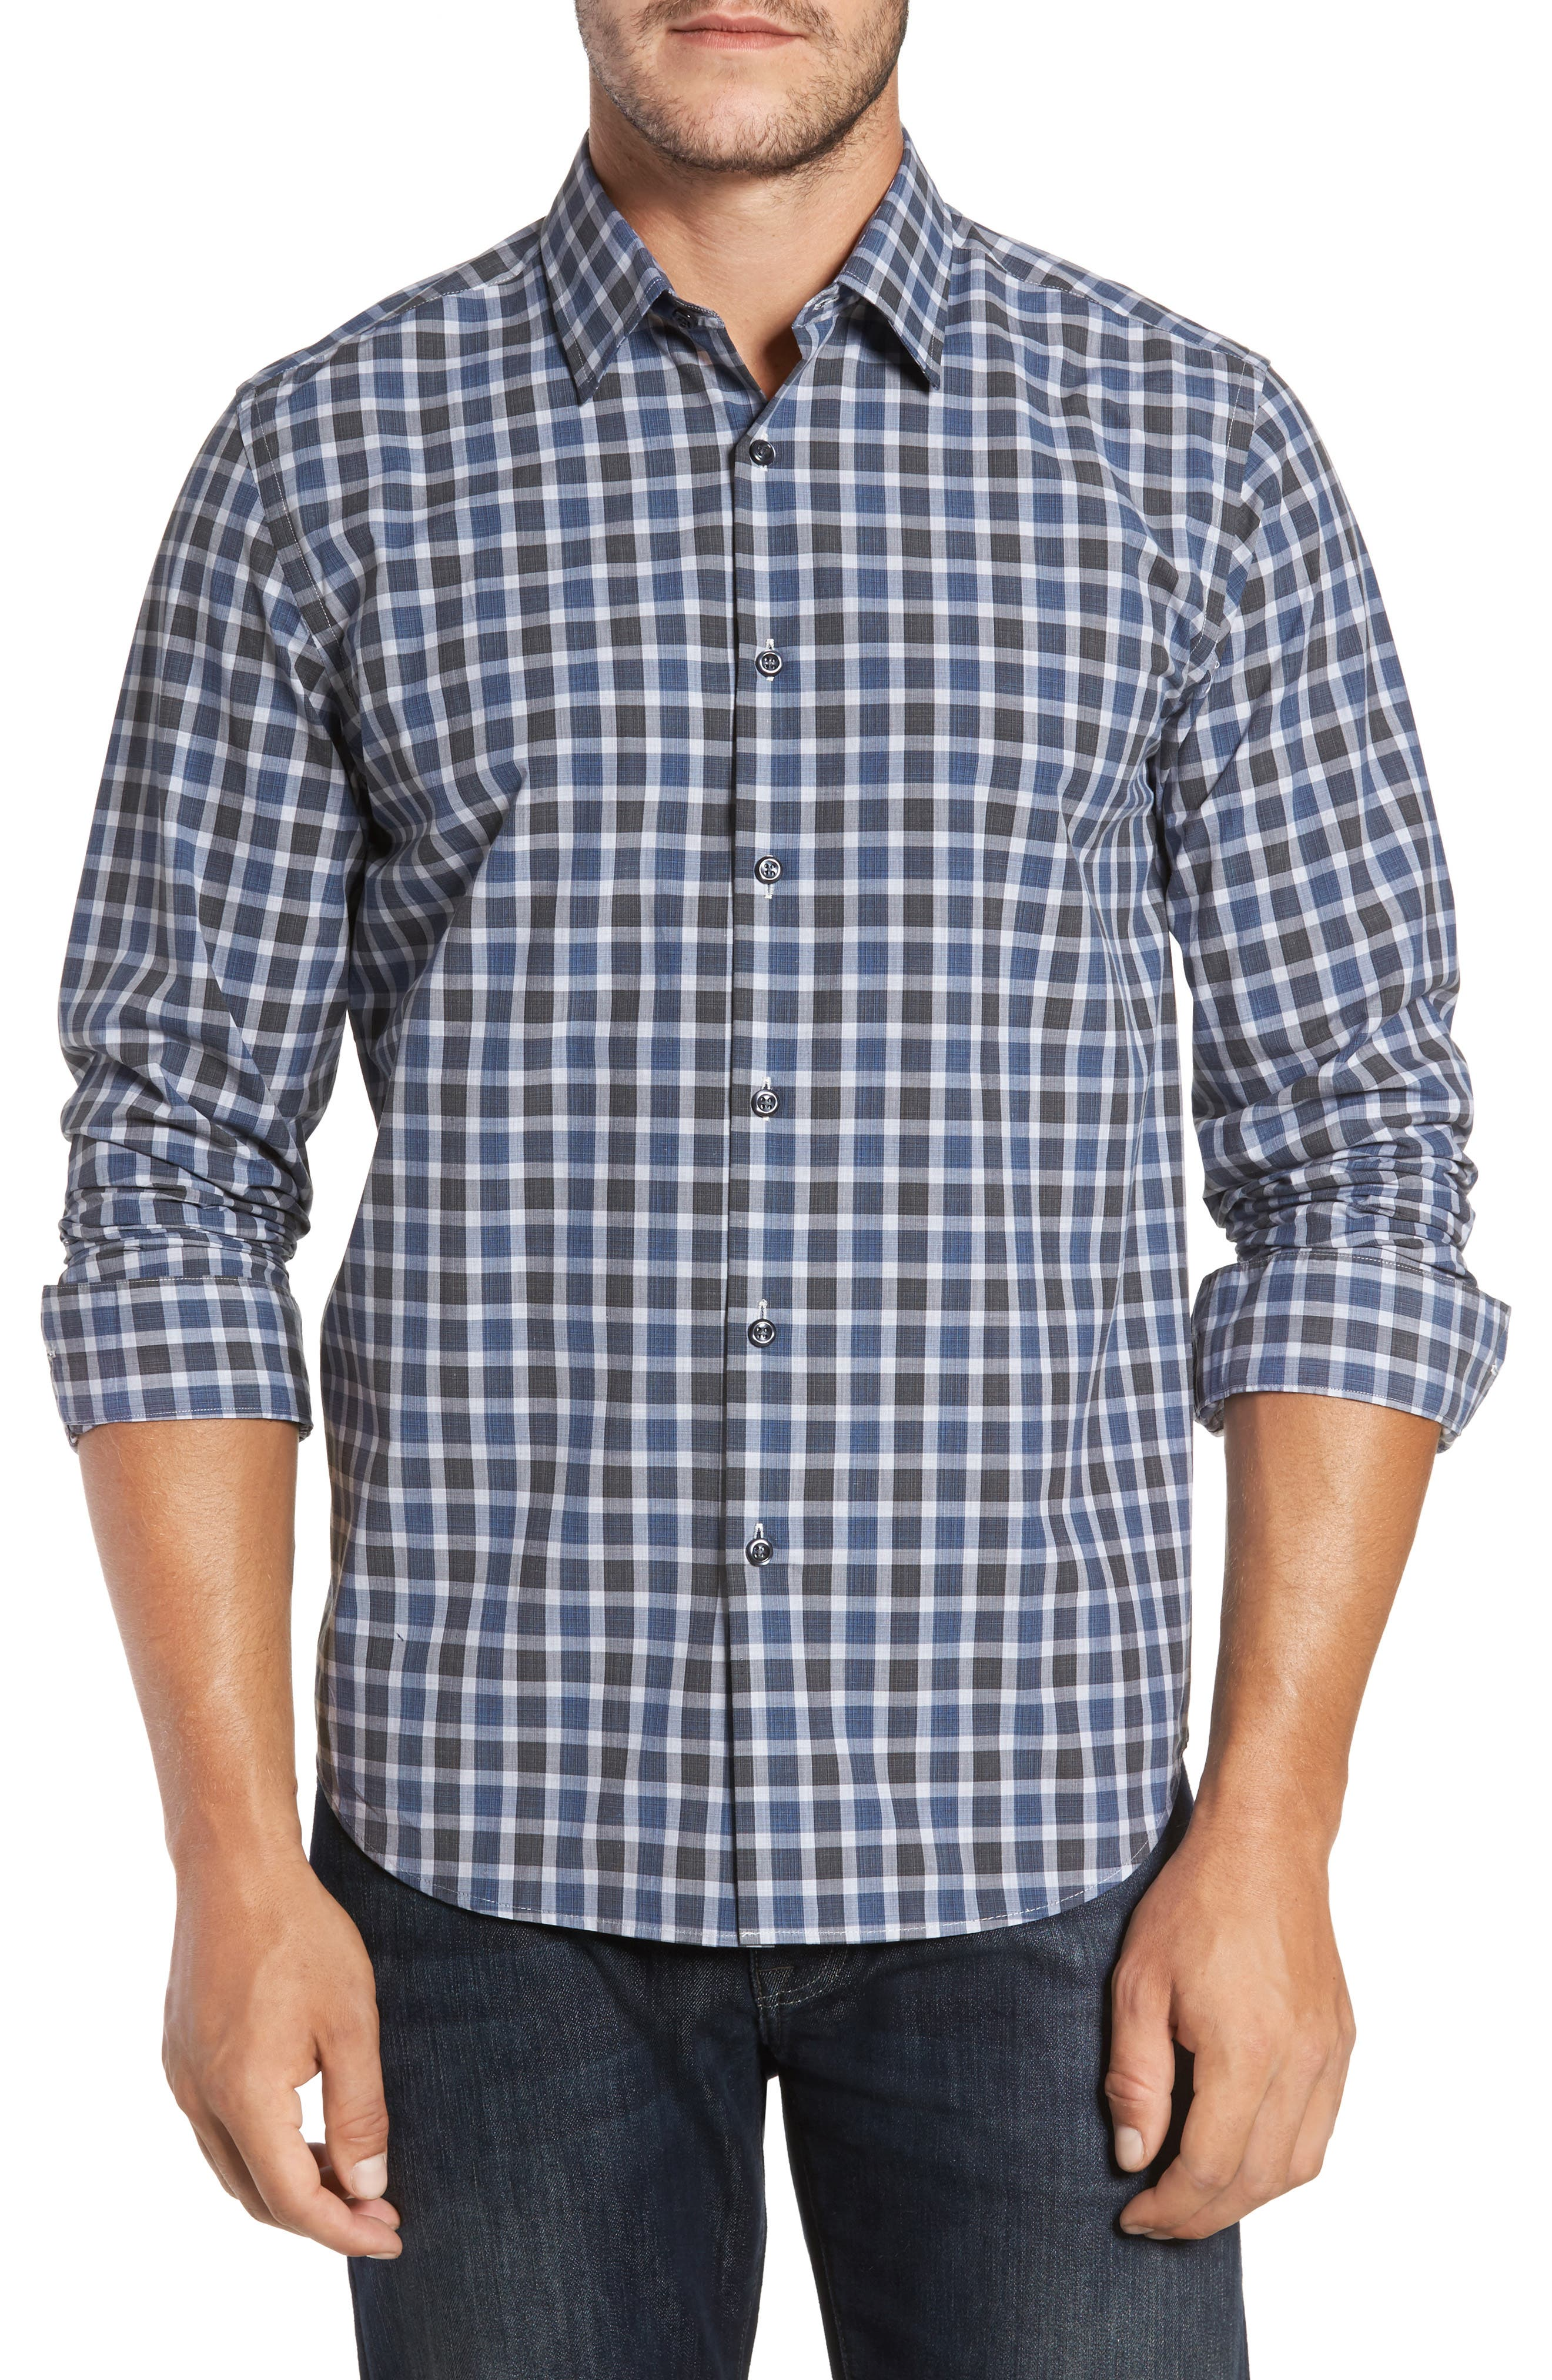 Robert Barakett Axel Regular Fit Check Sport Shirt